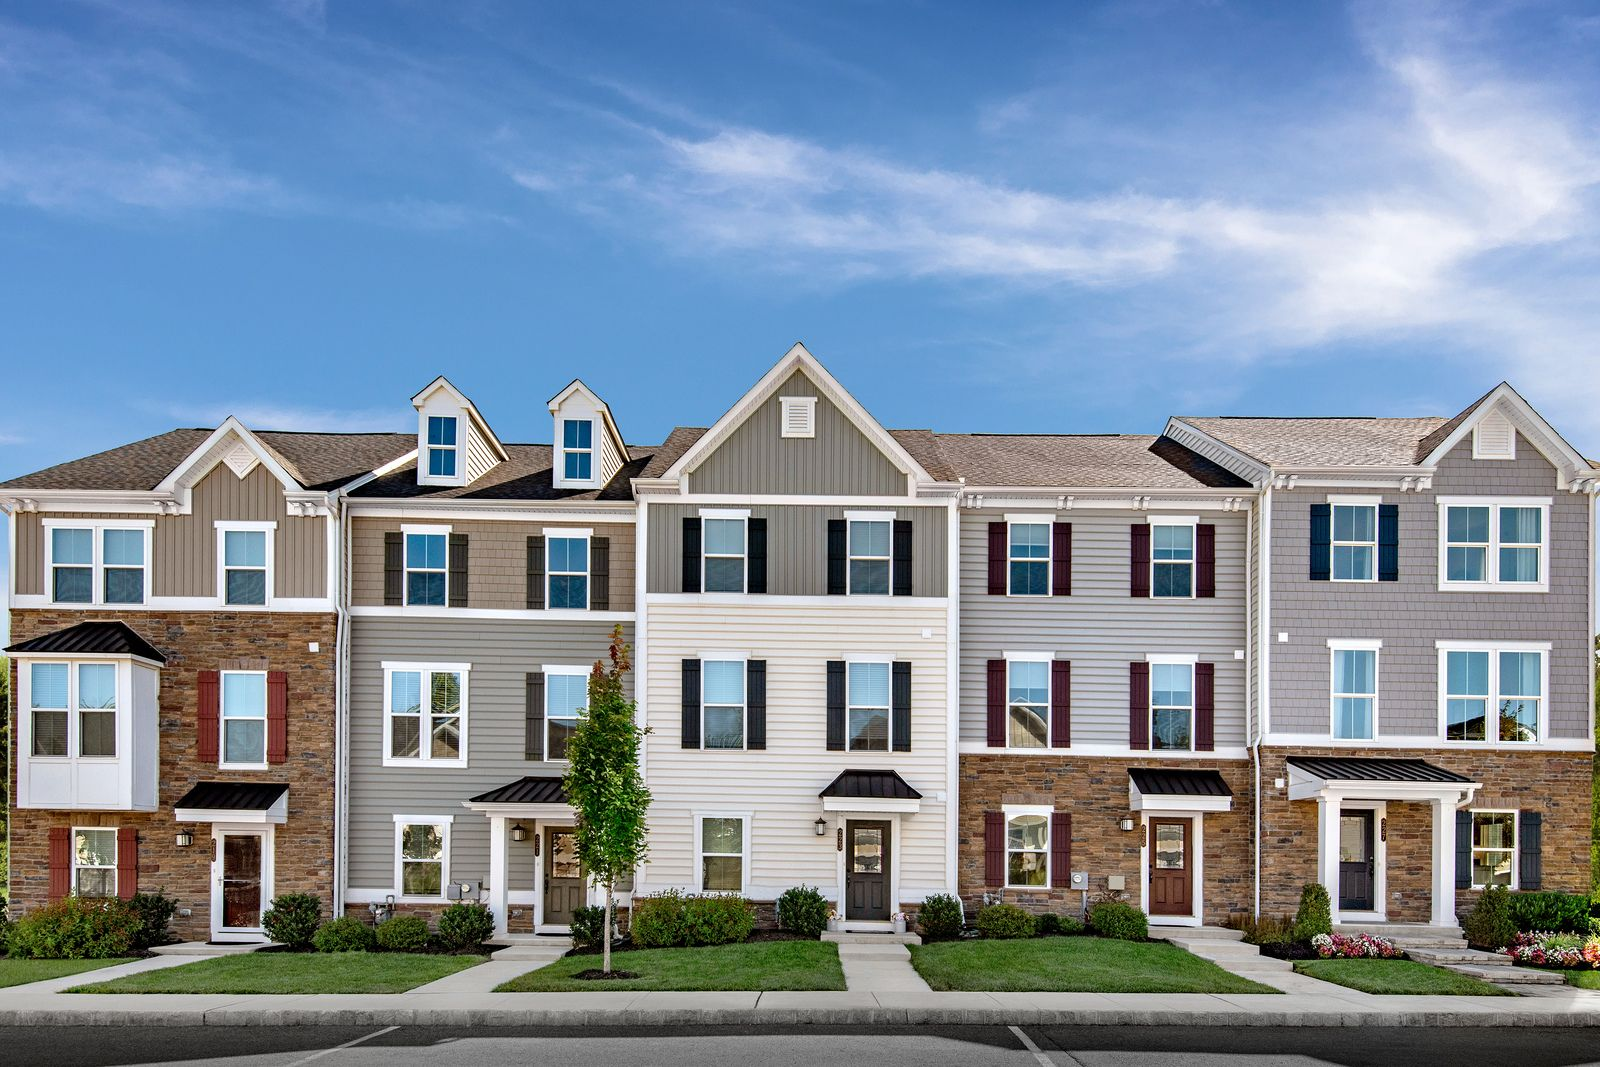 Final Opportunity at Atwater:Lowest-priced townhomes in Great Valley schools in a large community with amenities and convenient access to the PA Turnpike and the SEPTA train.Schedule anappointment today!